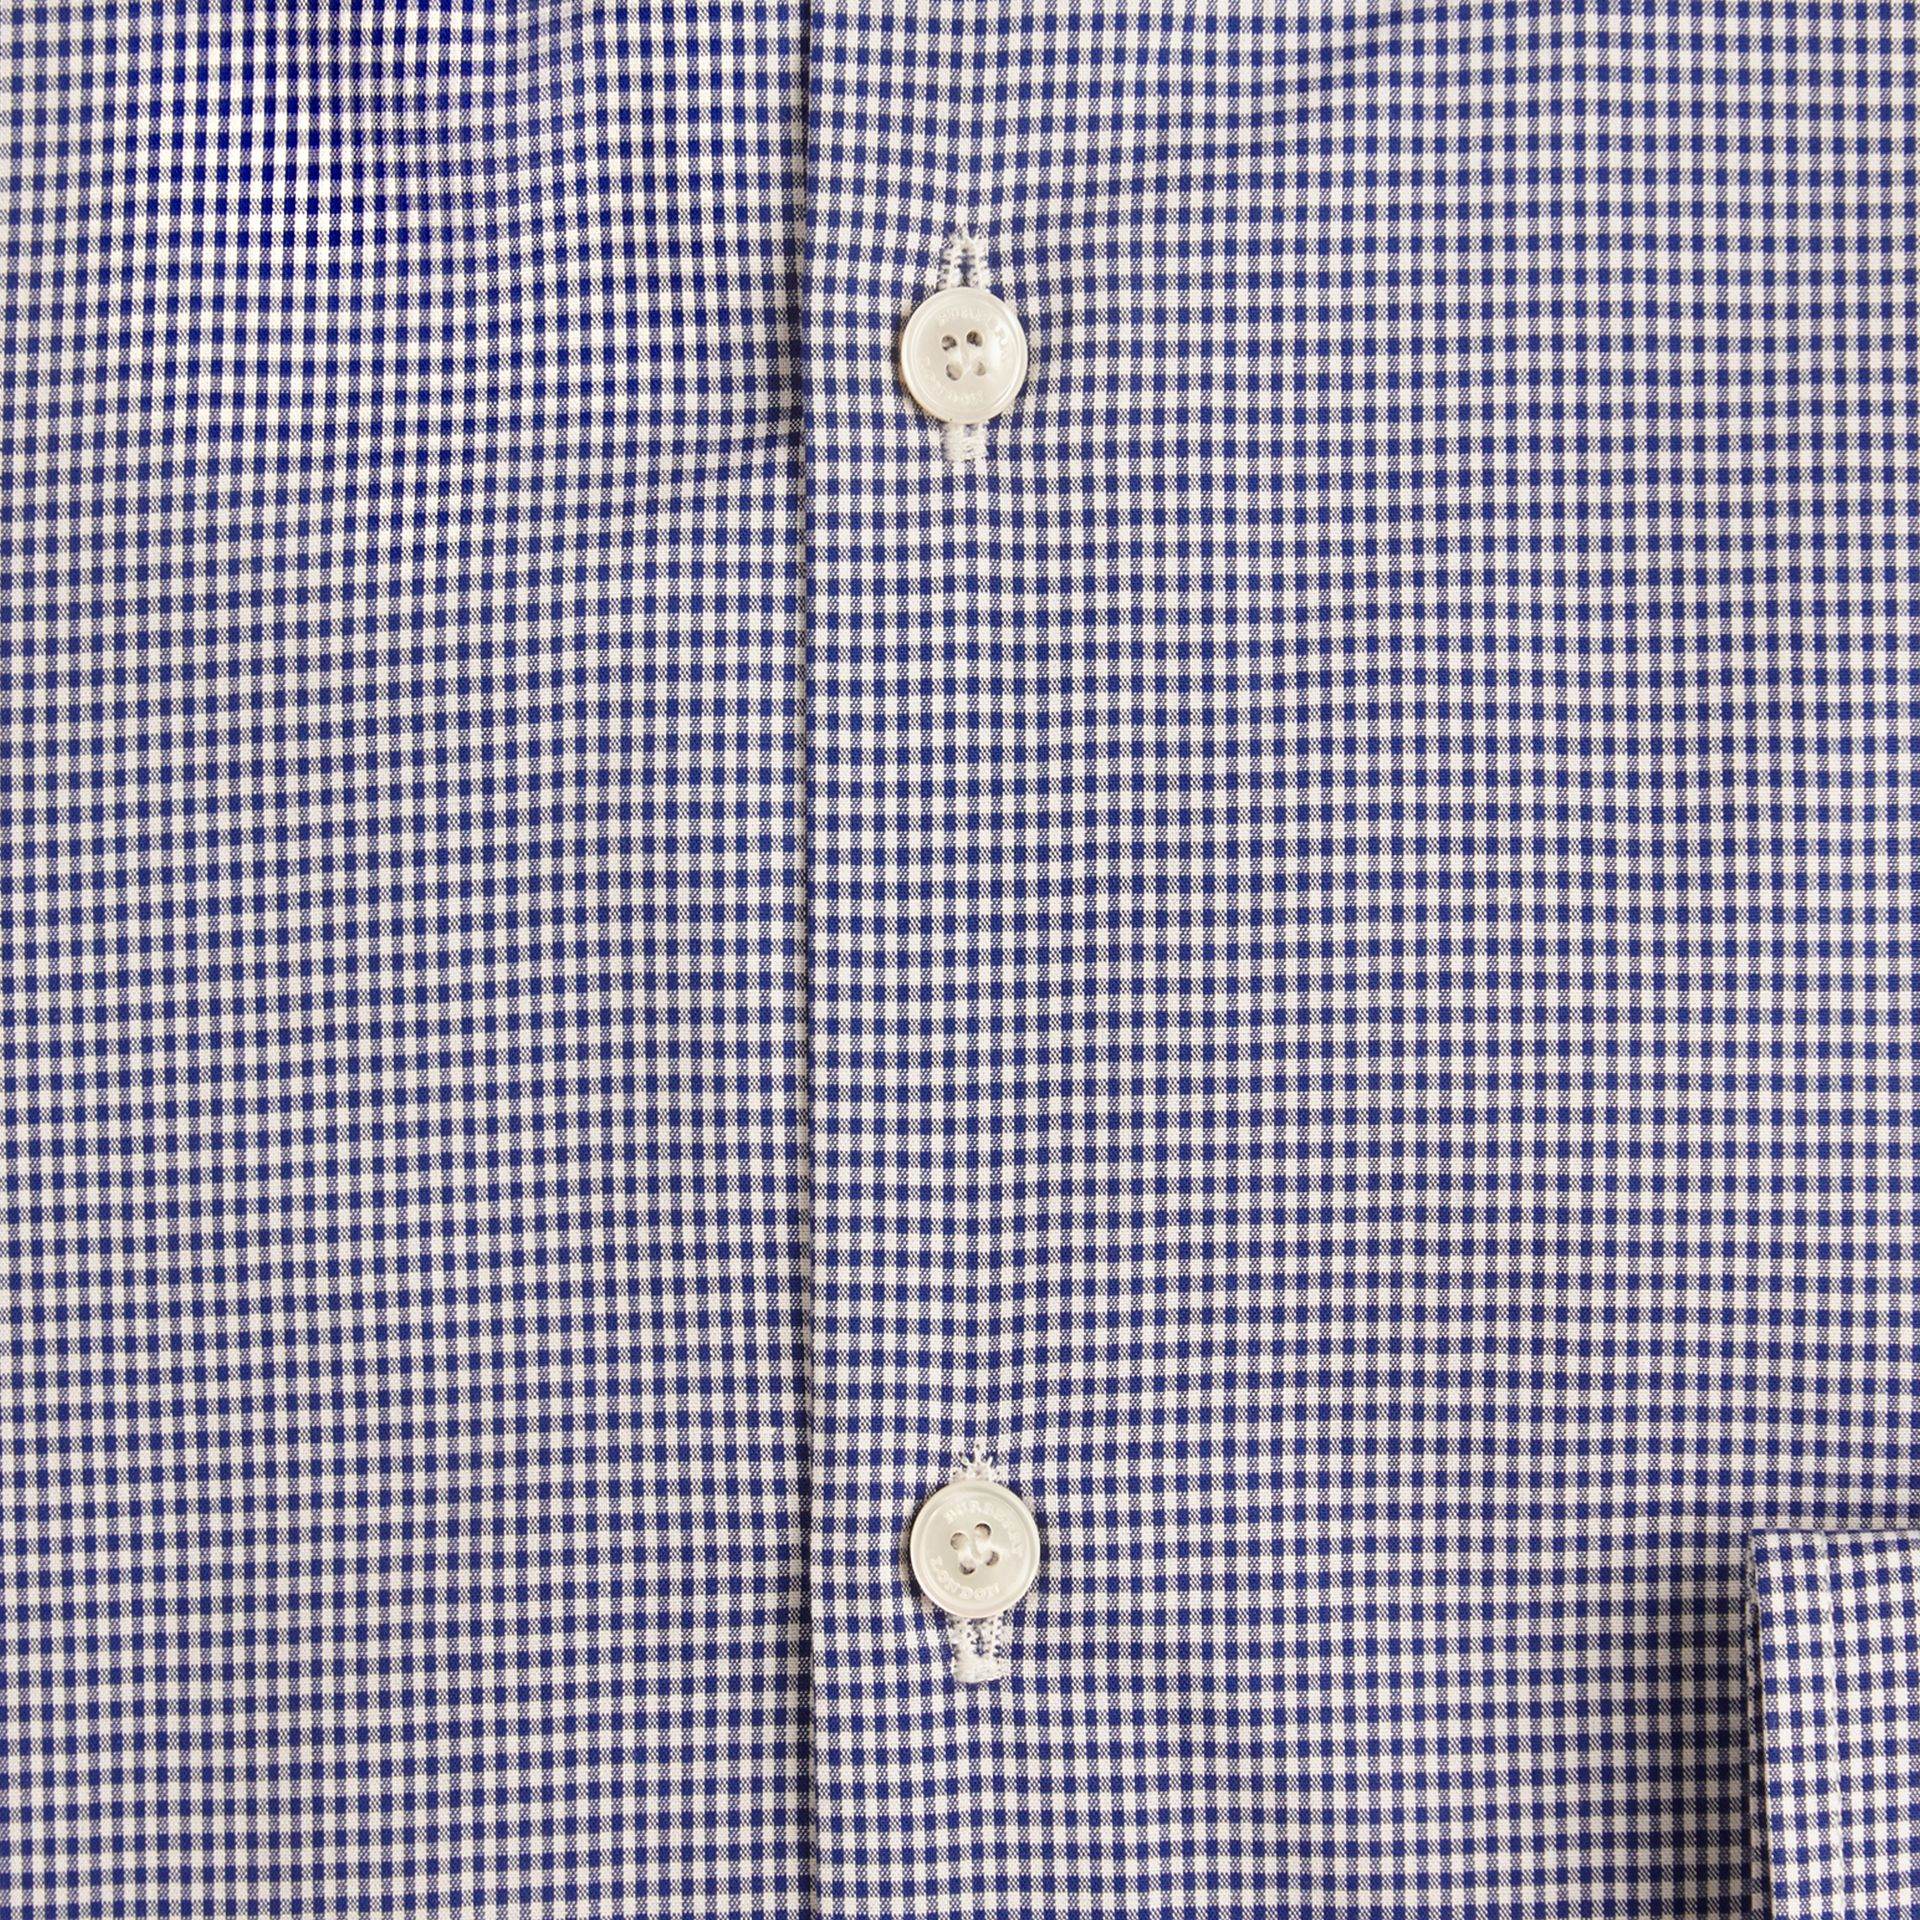 Dark empire blue Slim Fit Button-down Collar Gingham Cotton Poplin Shirt Dark Empire Blue - gallery image 2